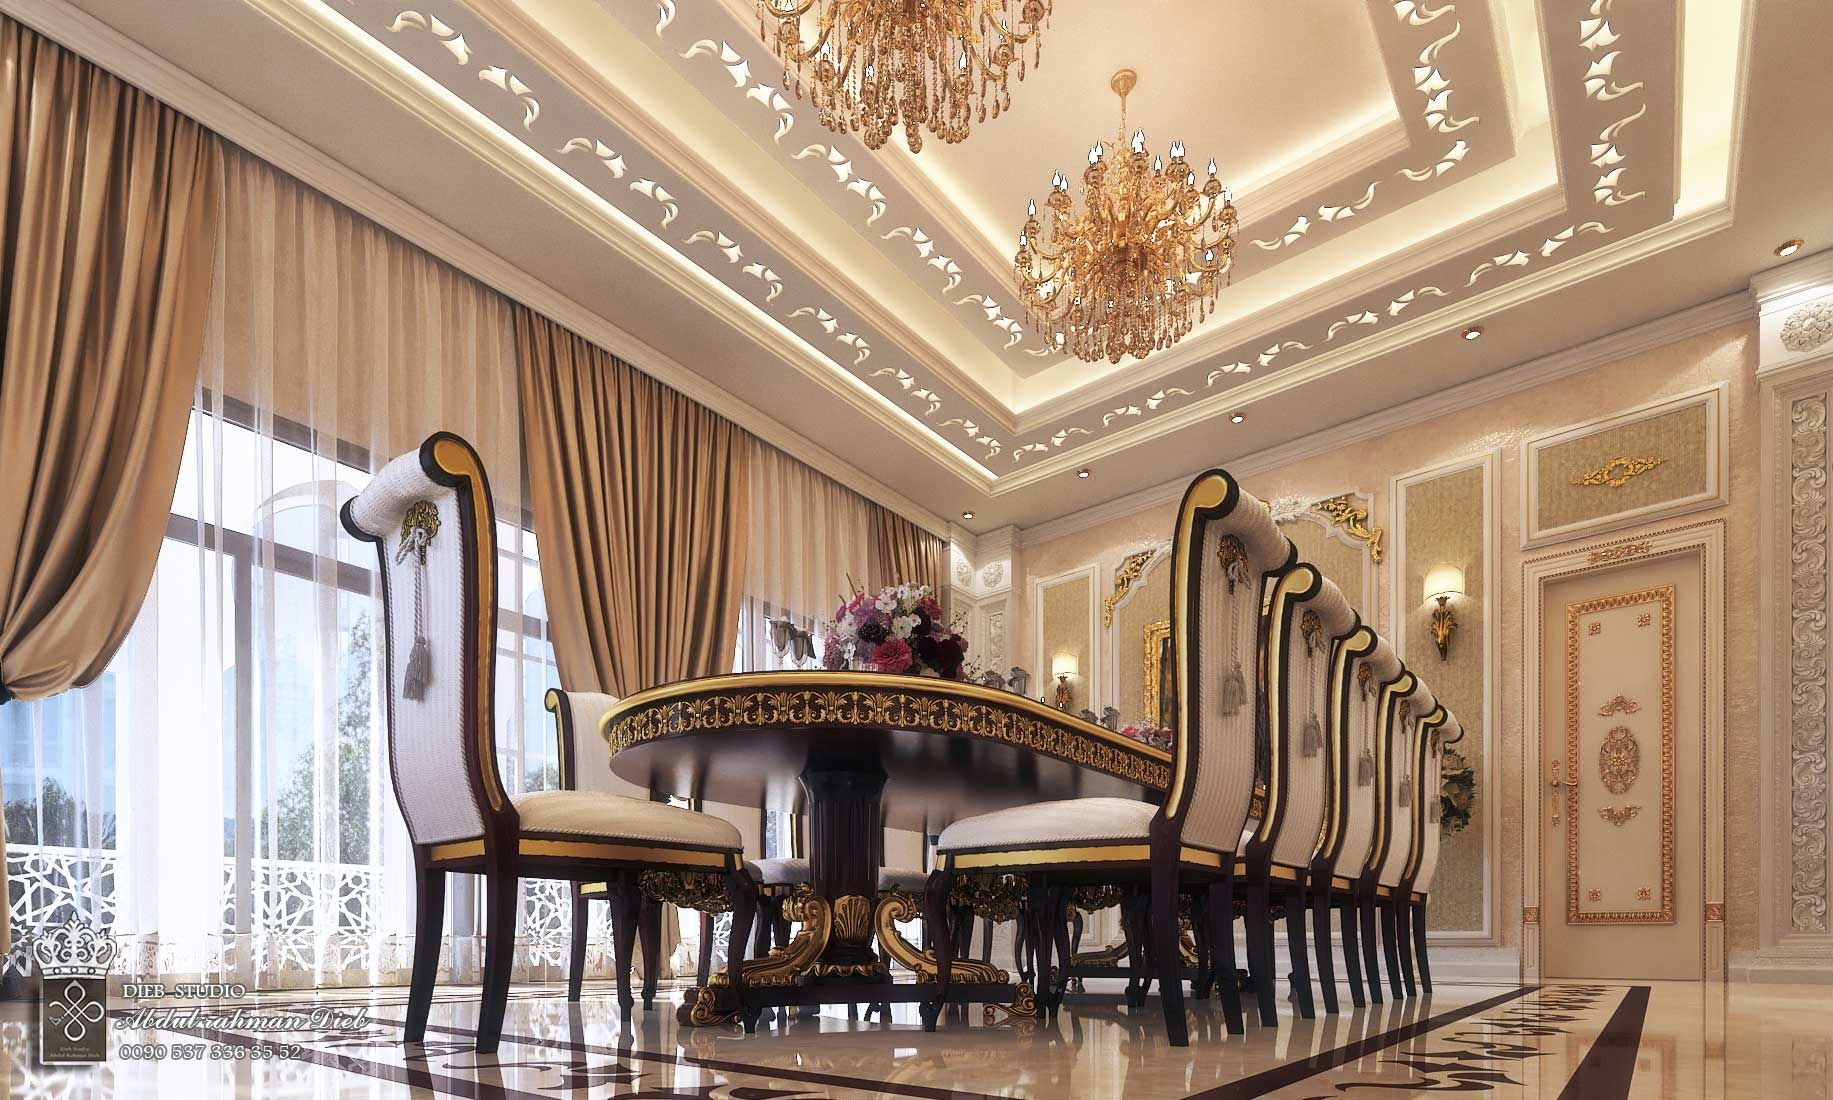 Young Bedroom With Royal Touches Ksa Royal Bedroom For Girl Luxury Exterior Design Dining Room Accessories Ceiling Design Living Room